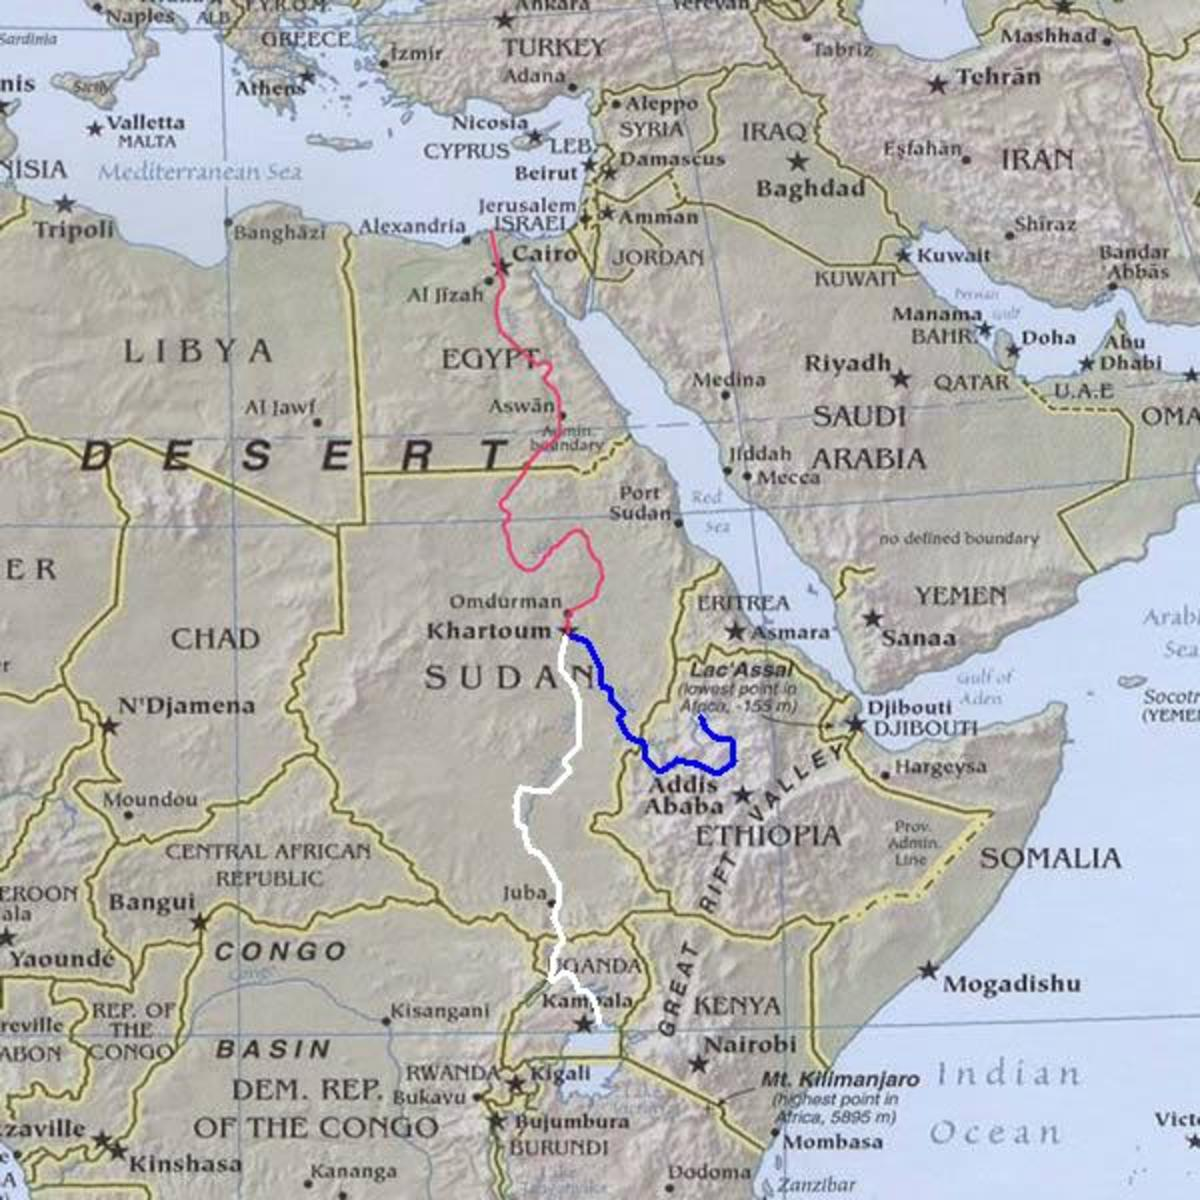 World's Longest River – World's Largest River – and World's Deepest River